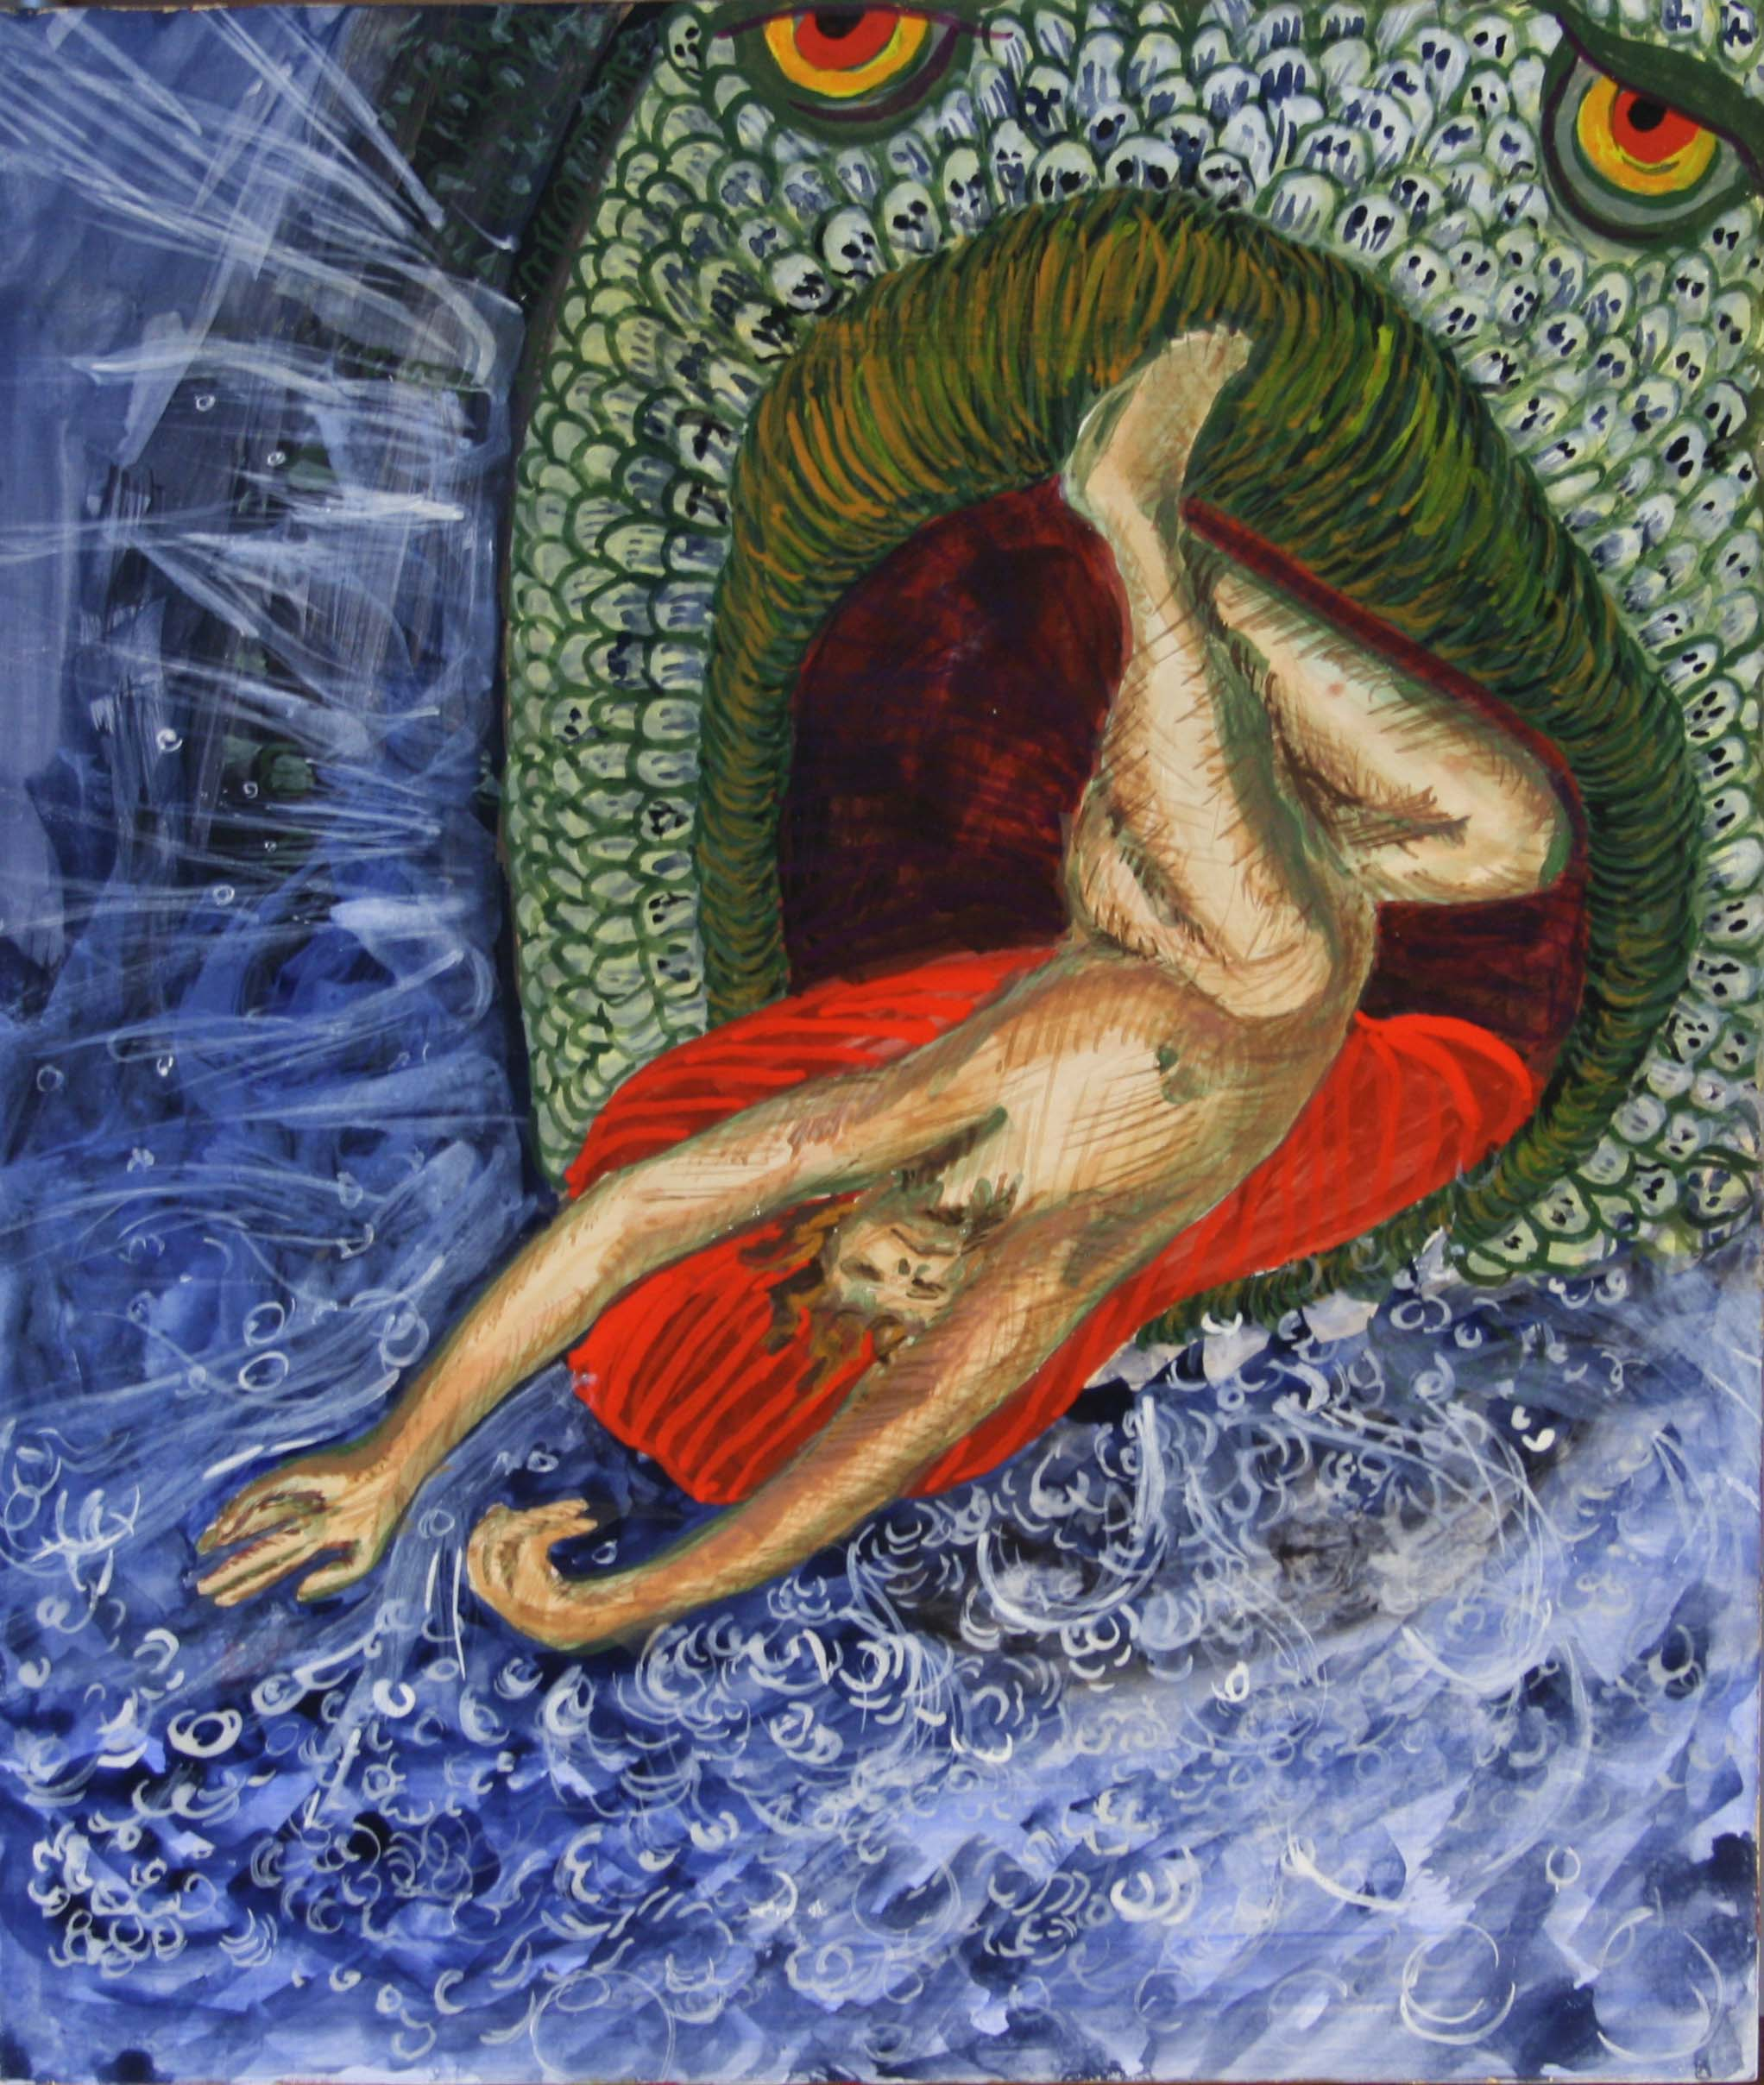 Jonah and the Whale by Fr Jown Quigley